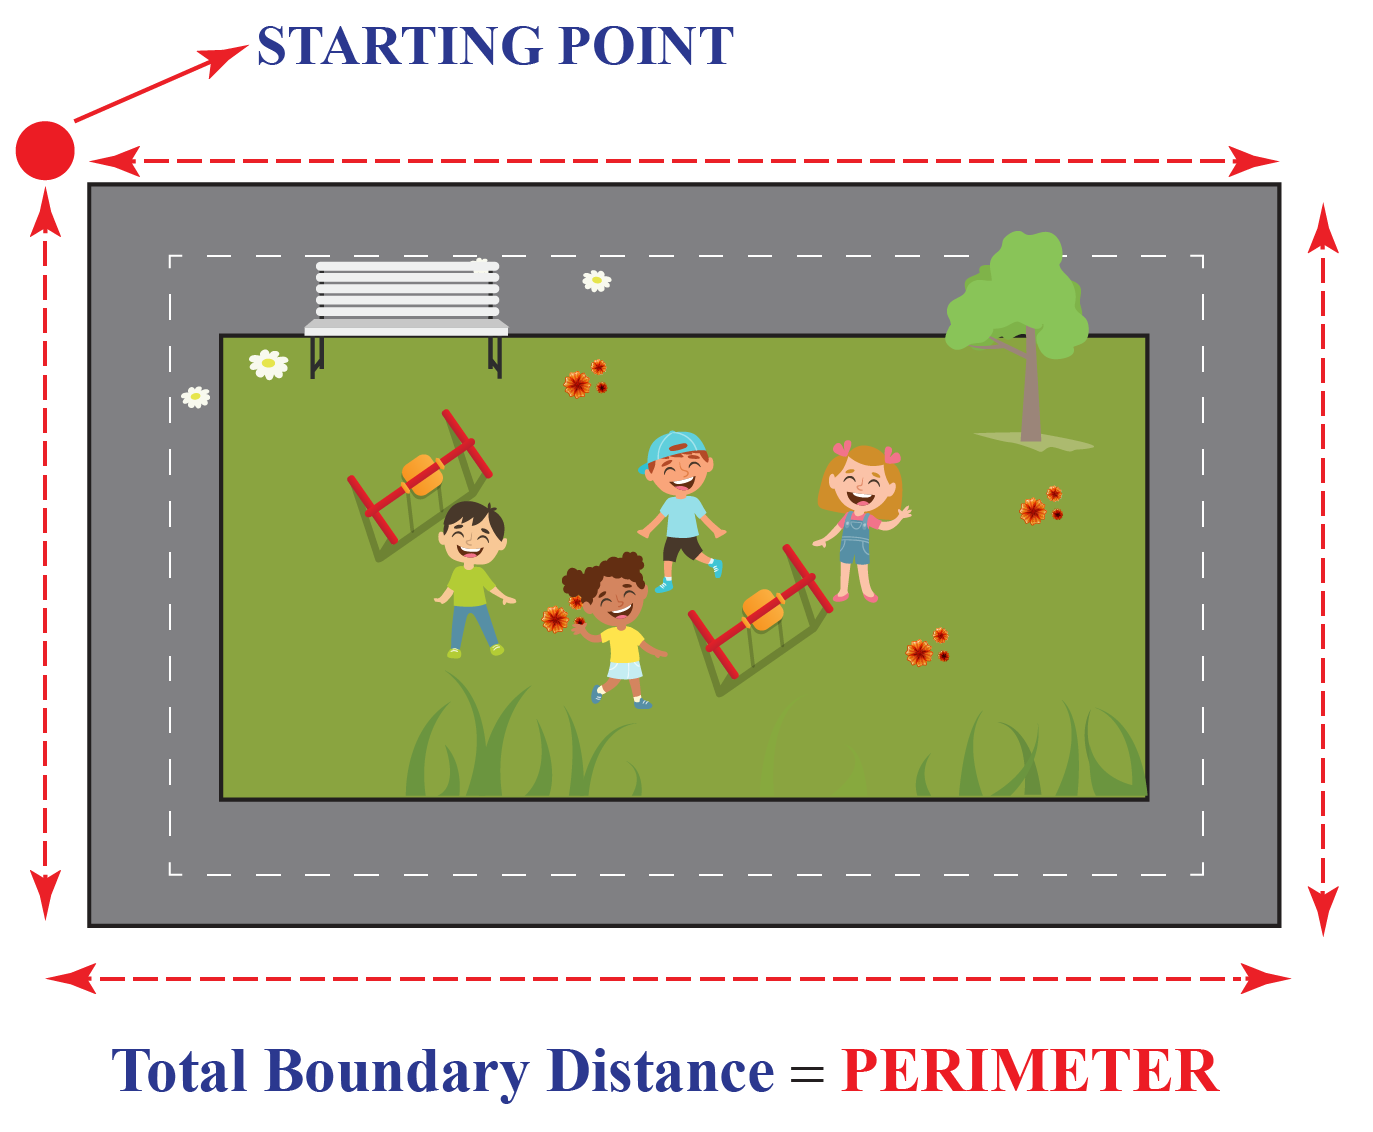 Garden image with kids, showing boundary and representing perimeter